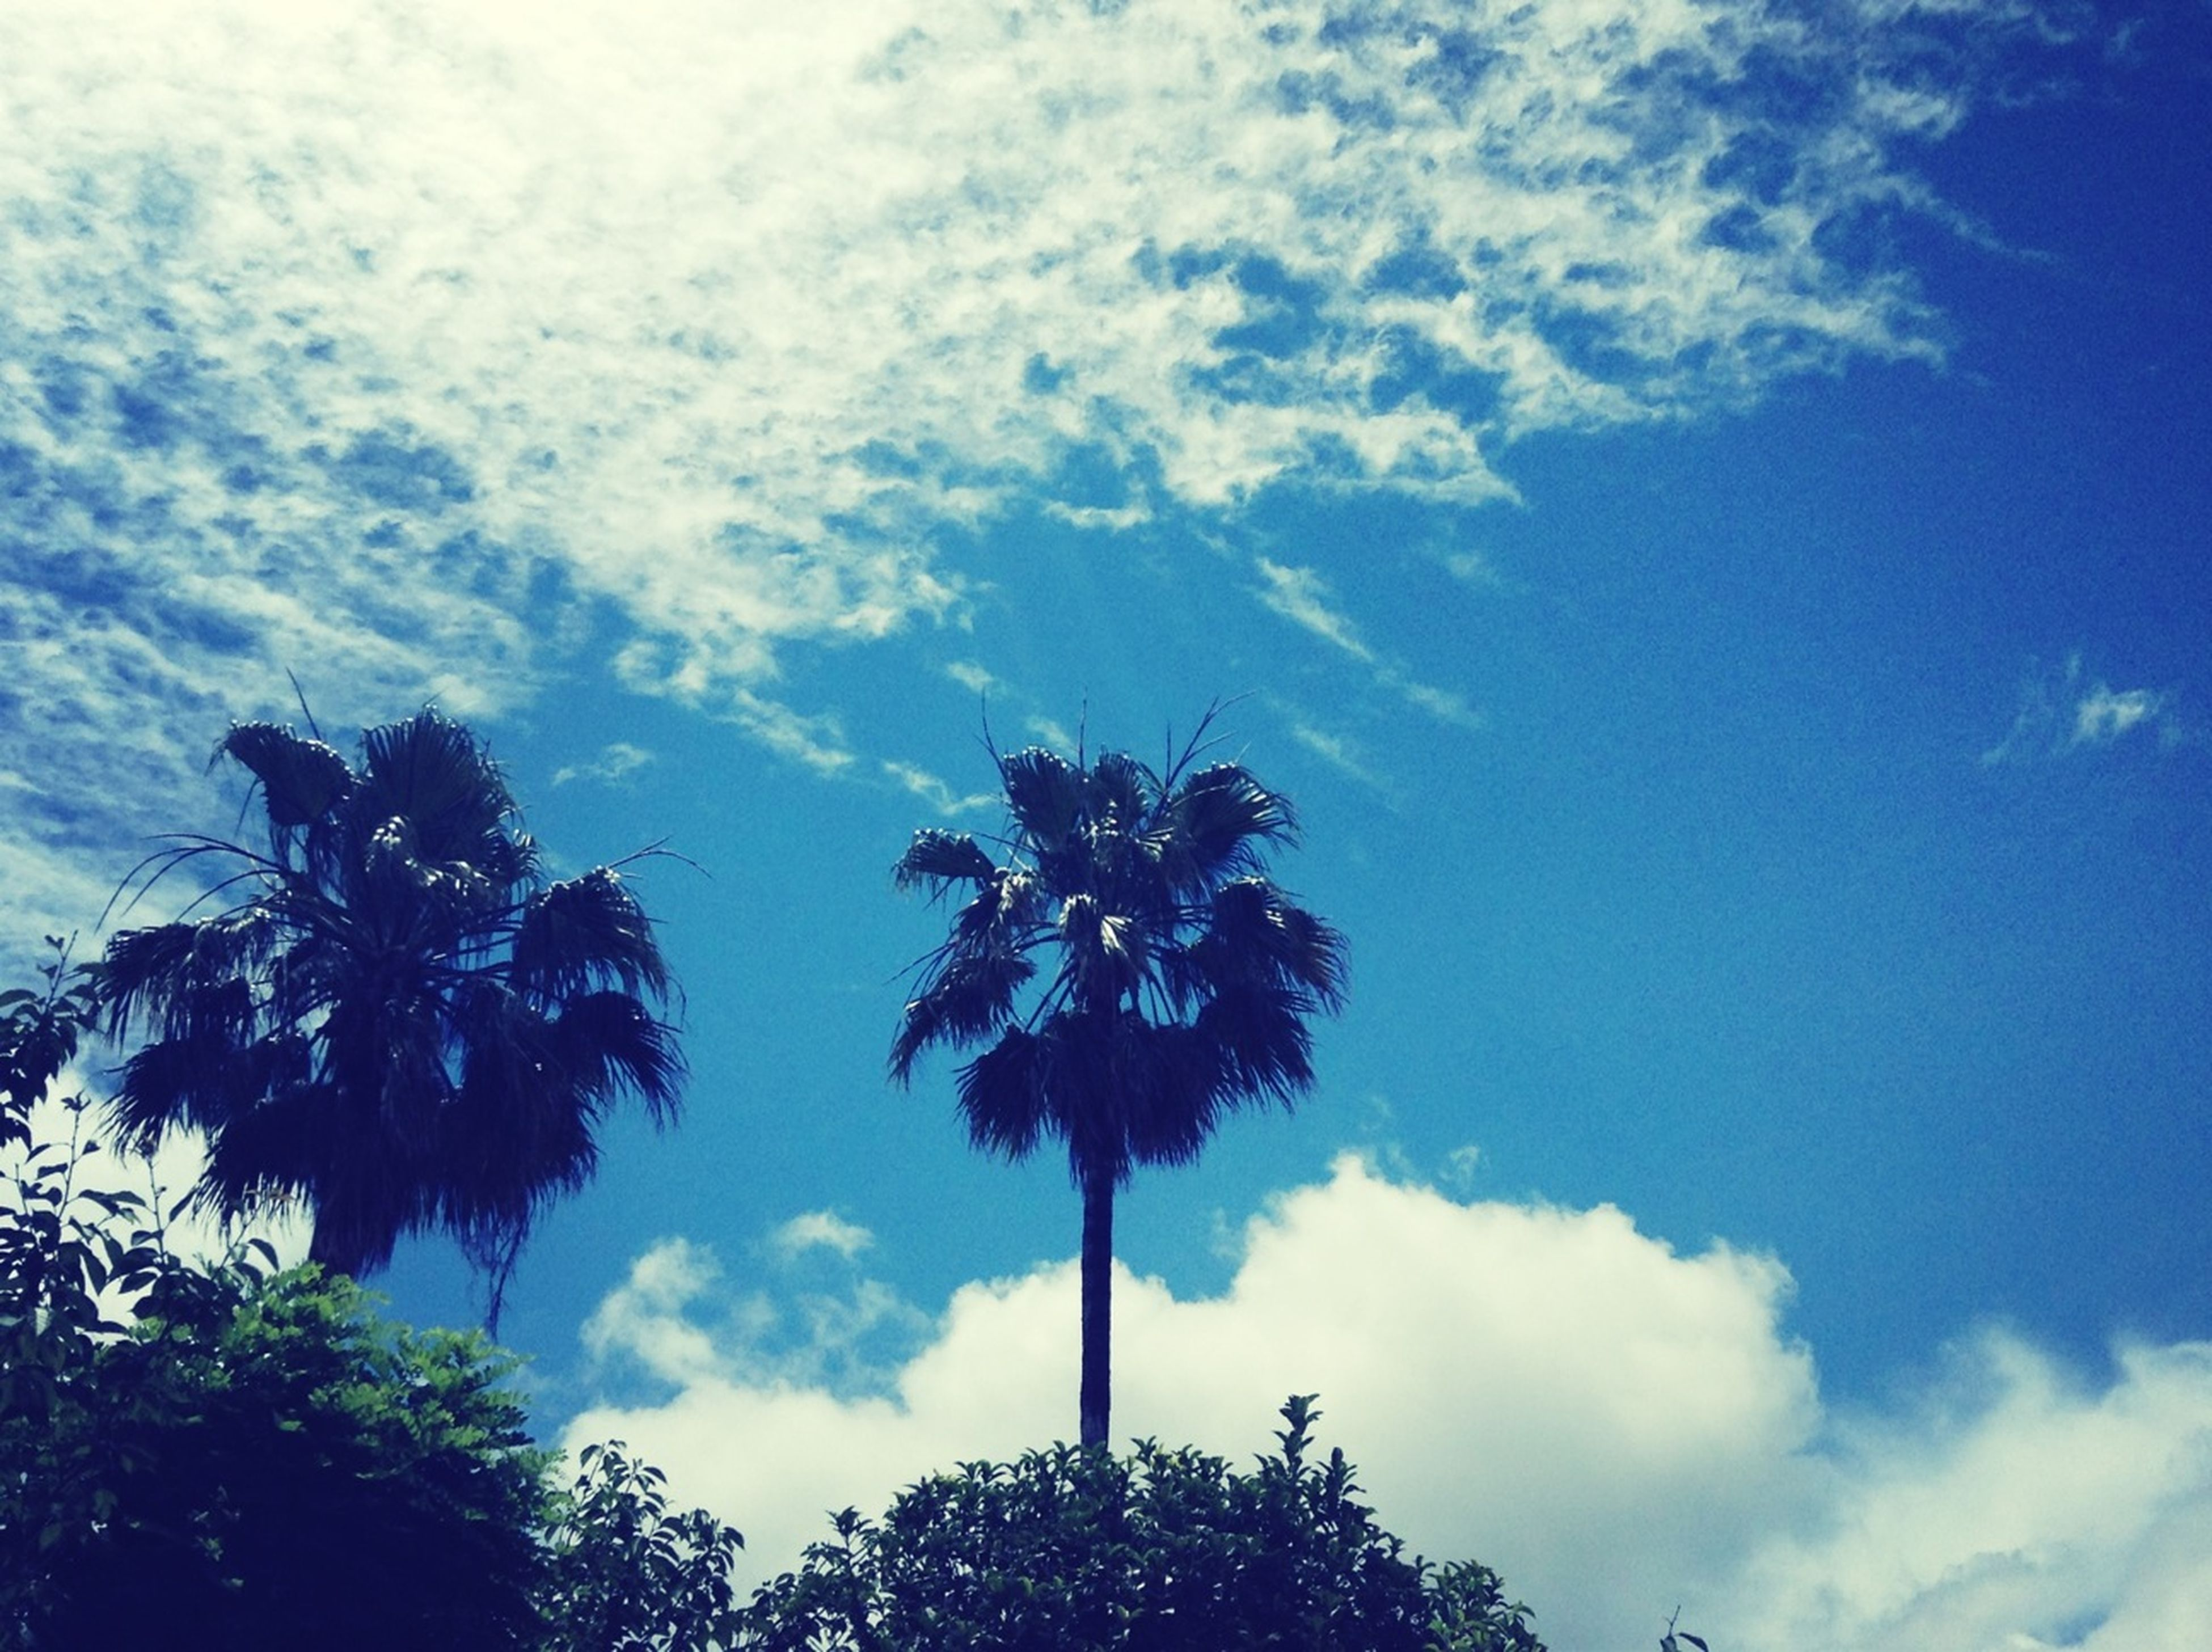 tree, low angle view, sky, palm tree, cloud - sky, growth, tranquility, silhouette, nature, beauty in nature, blue, cloud, scenics, tree trunk, cloudy, branch, tranquil scene, no people, outdoors, day